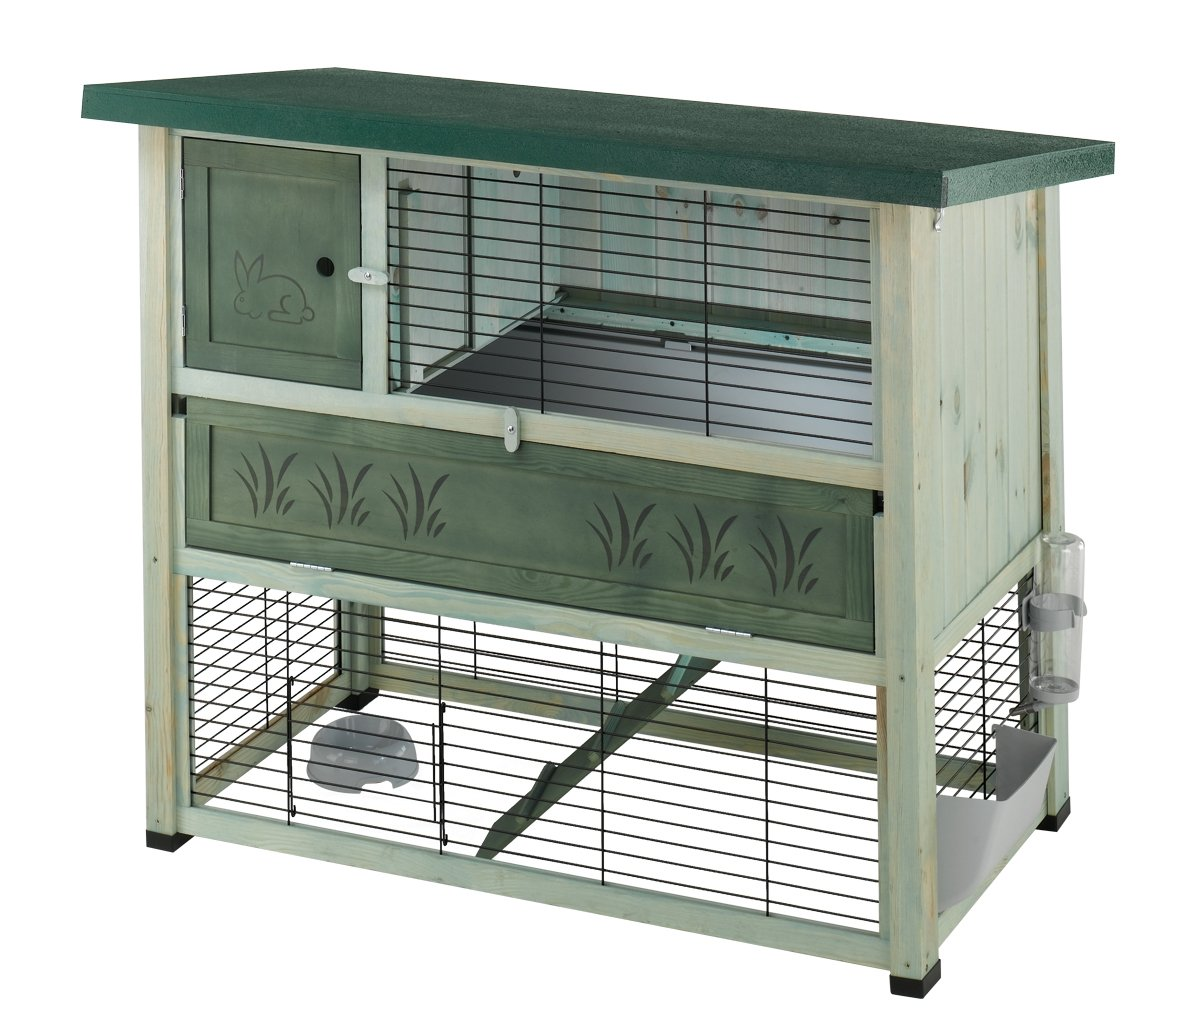 Ferplast Ranch 120 Plus Wooden 57091000 Rodent Cage, 46 x 69 x 101 cm